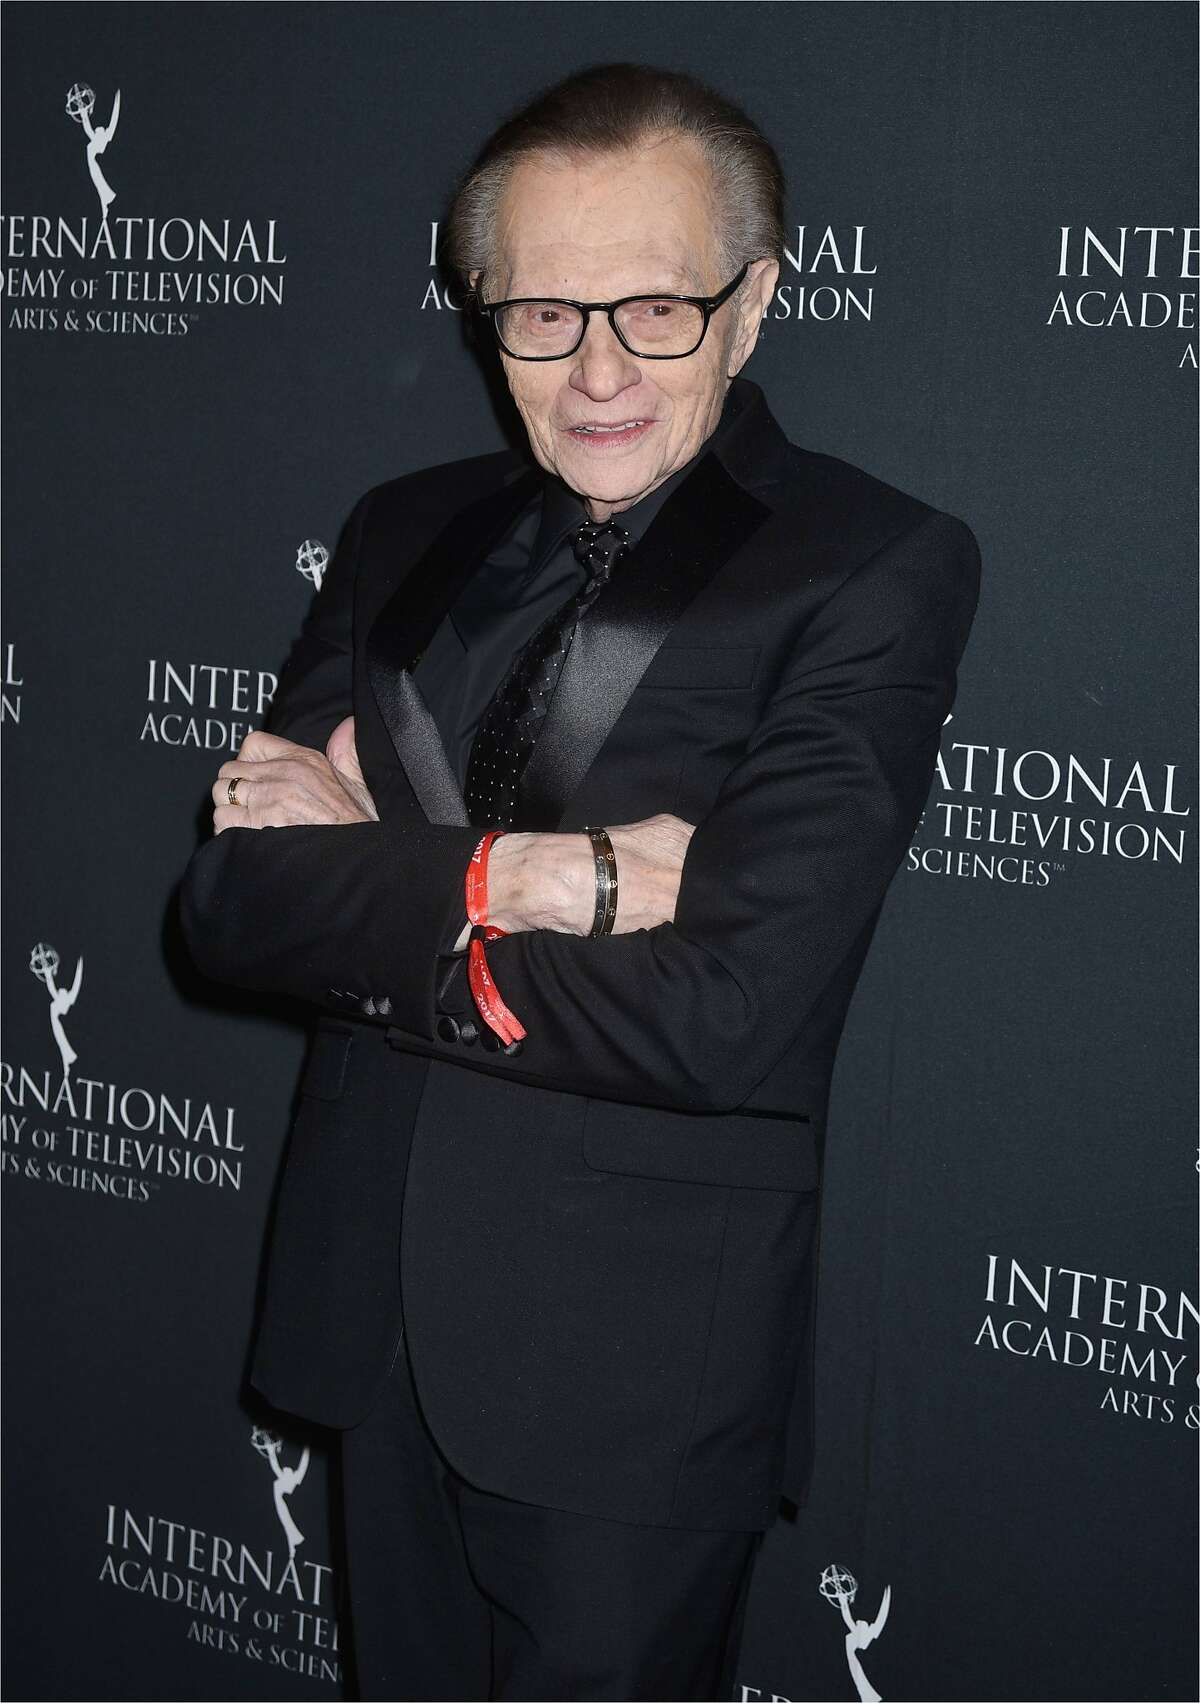 Larry King at the 45th International Emmy Awards at New York Hilton on November 20, 2017, in New York City. (MM/Abaca Press/TNS)